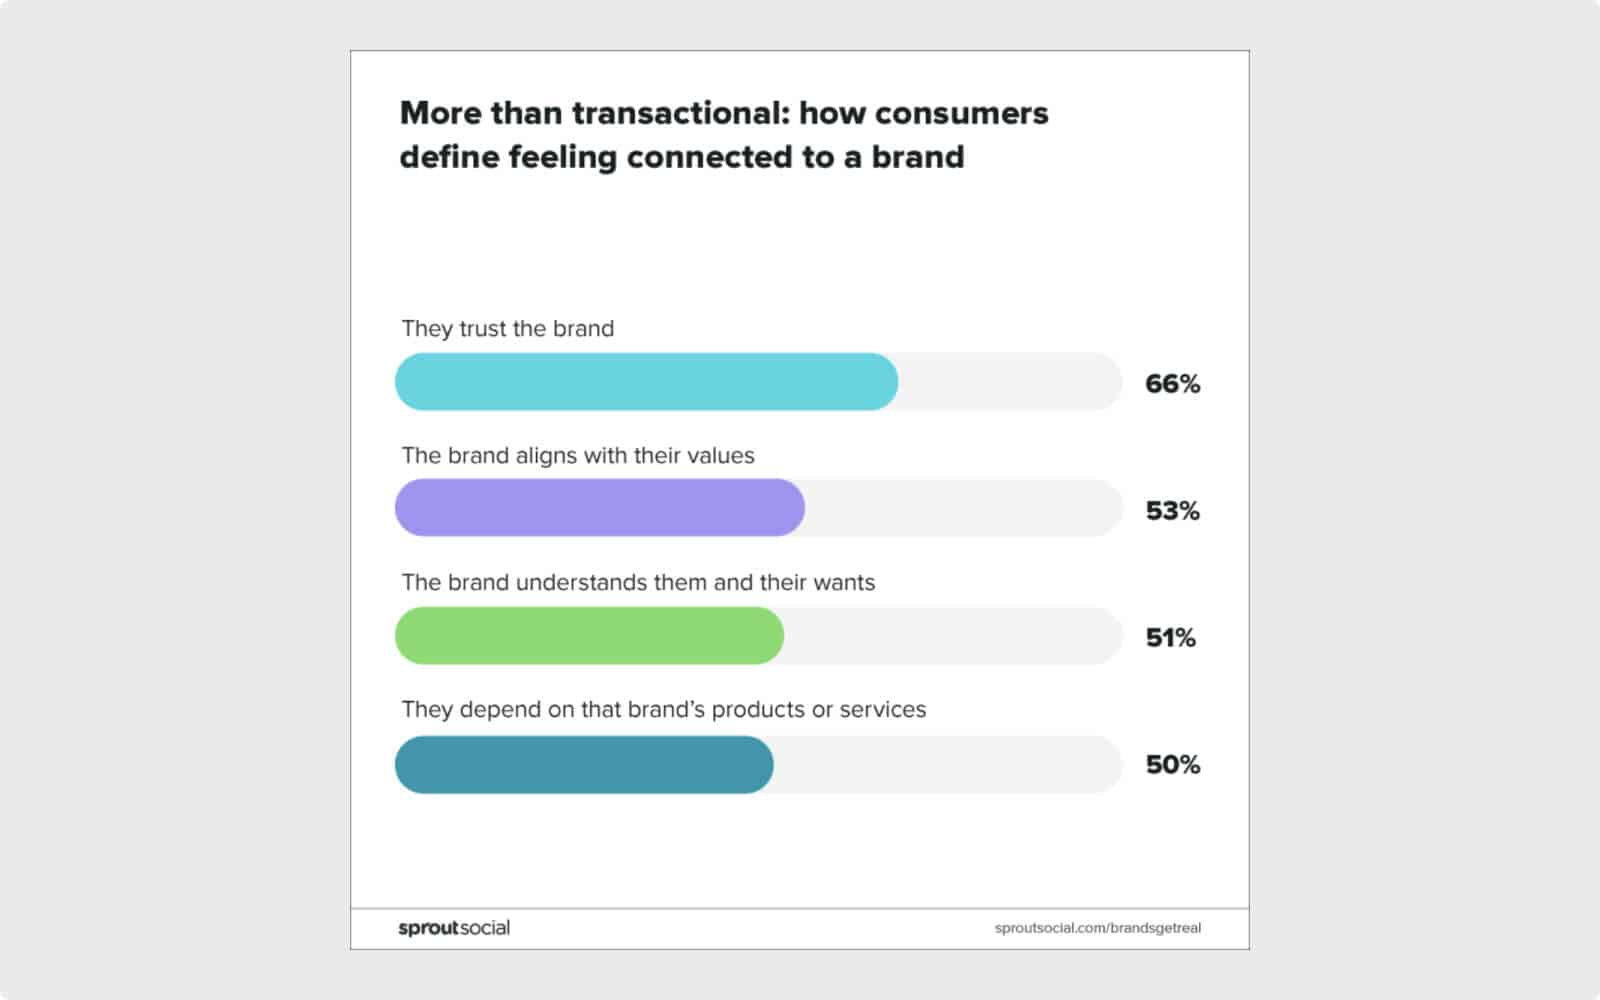 Consumers relationships with brands are more than transactional.